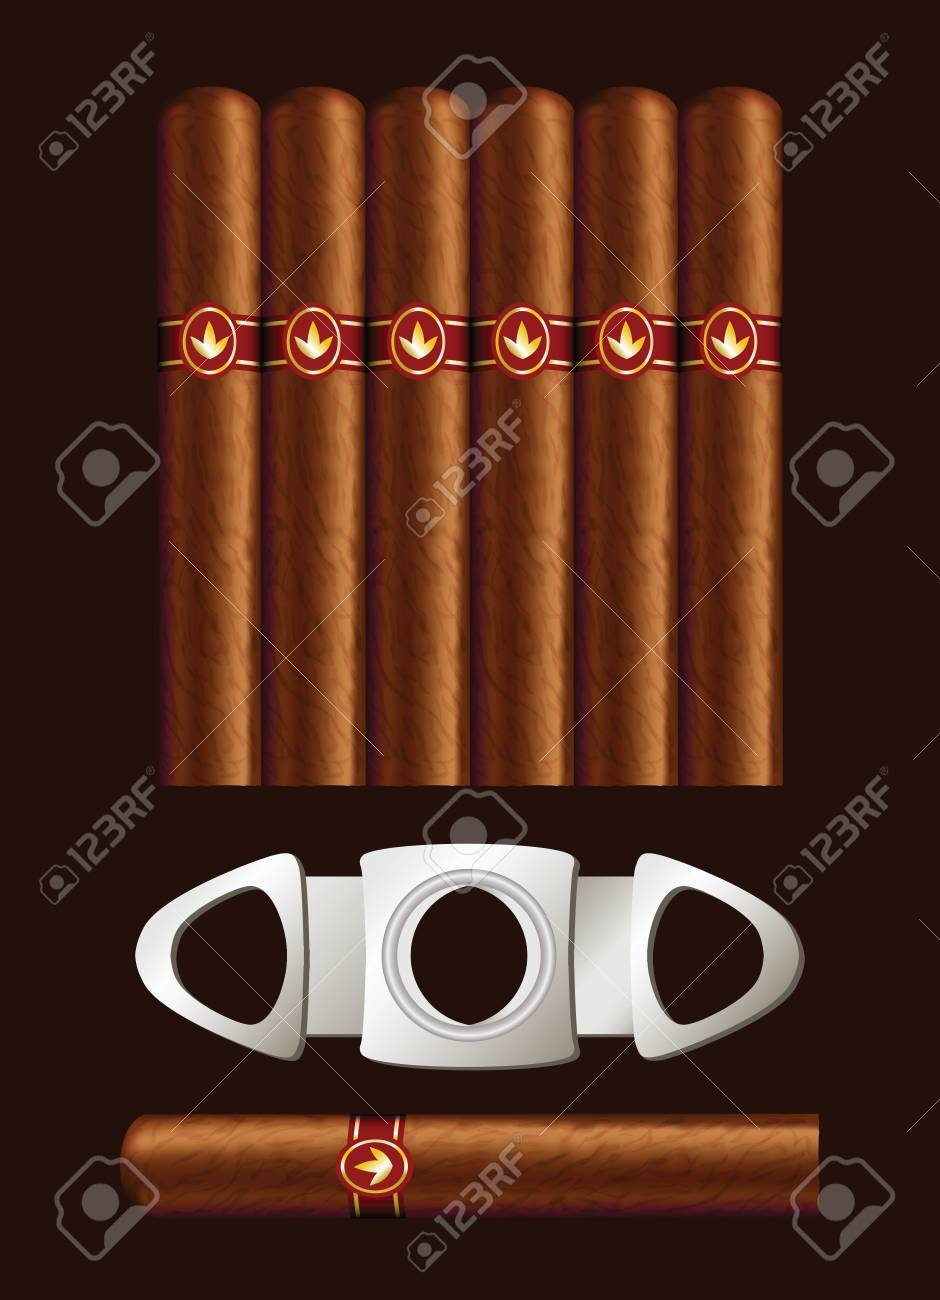 Cigars and guillotine. Vector illustration on black background. Stock Vector - 10762692